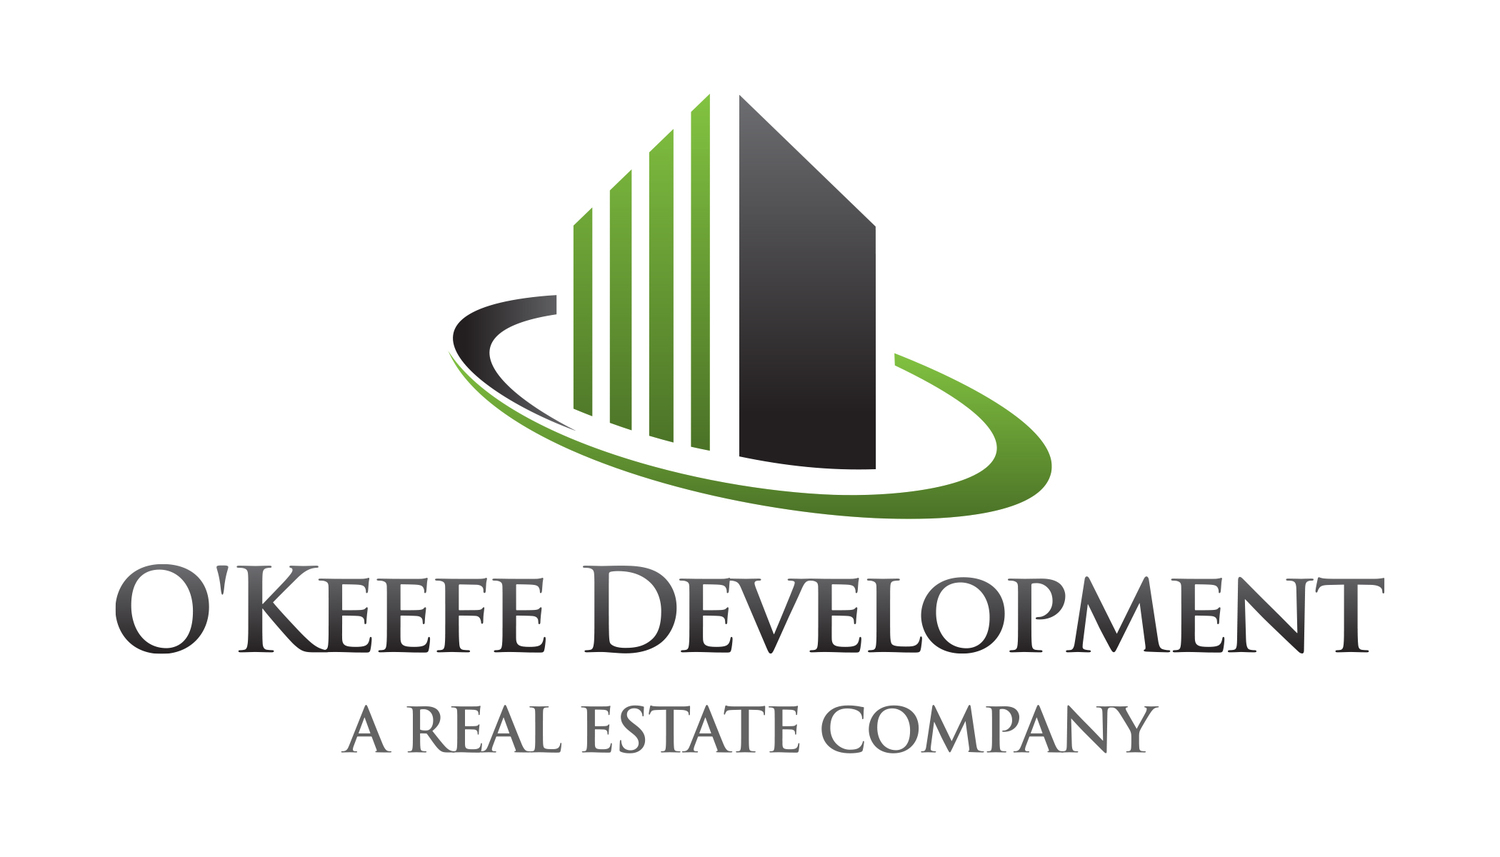 O'Keefe Development